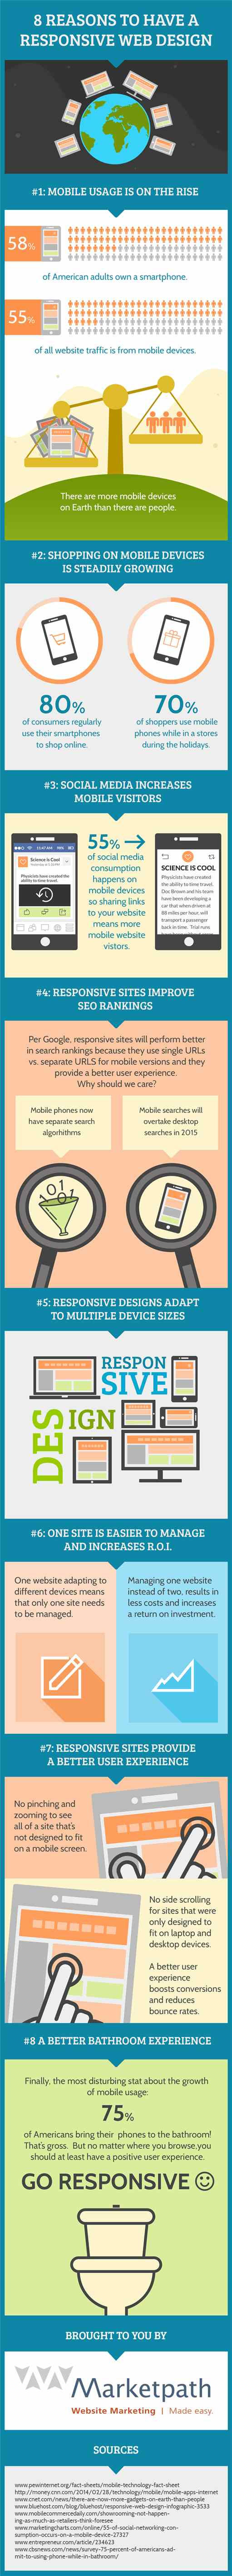 8 reasons to have responsive web design